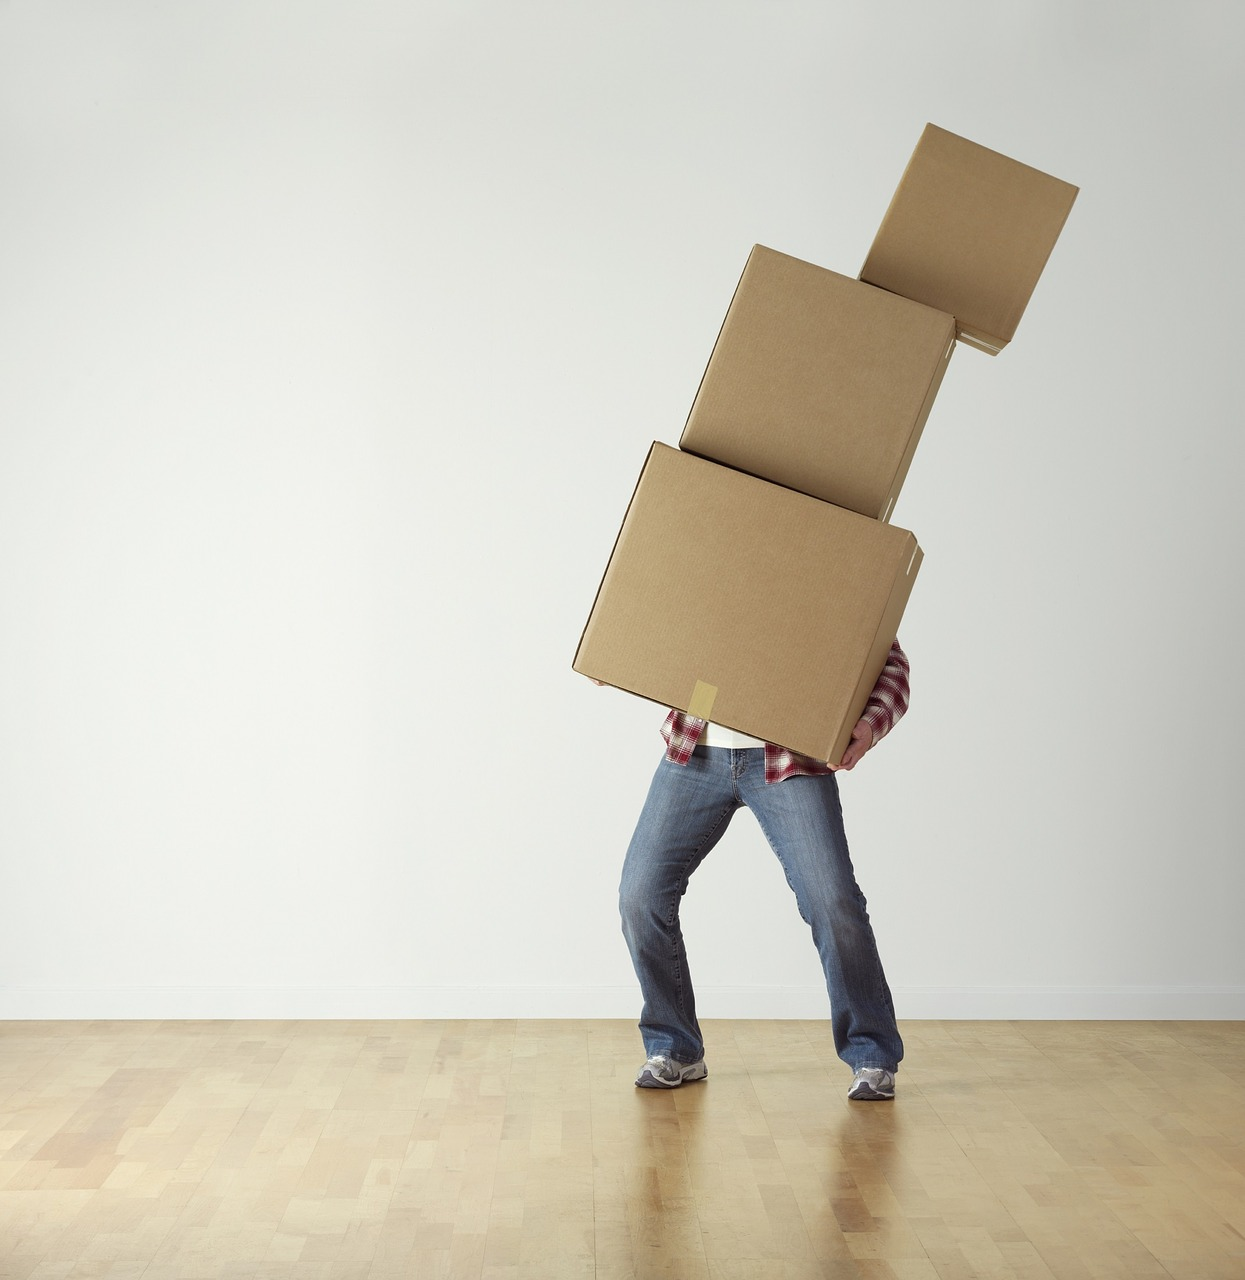 Man carrying boxes - prepare for moving